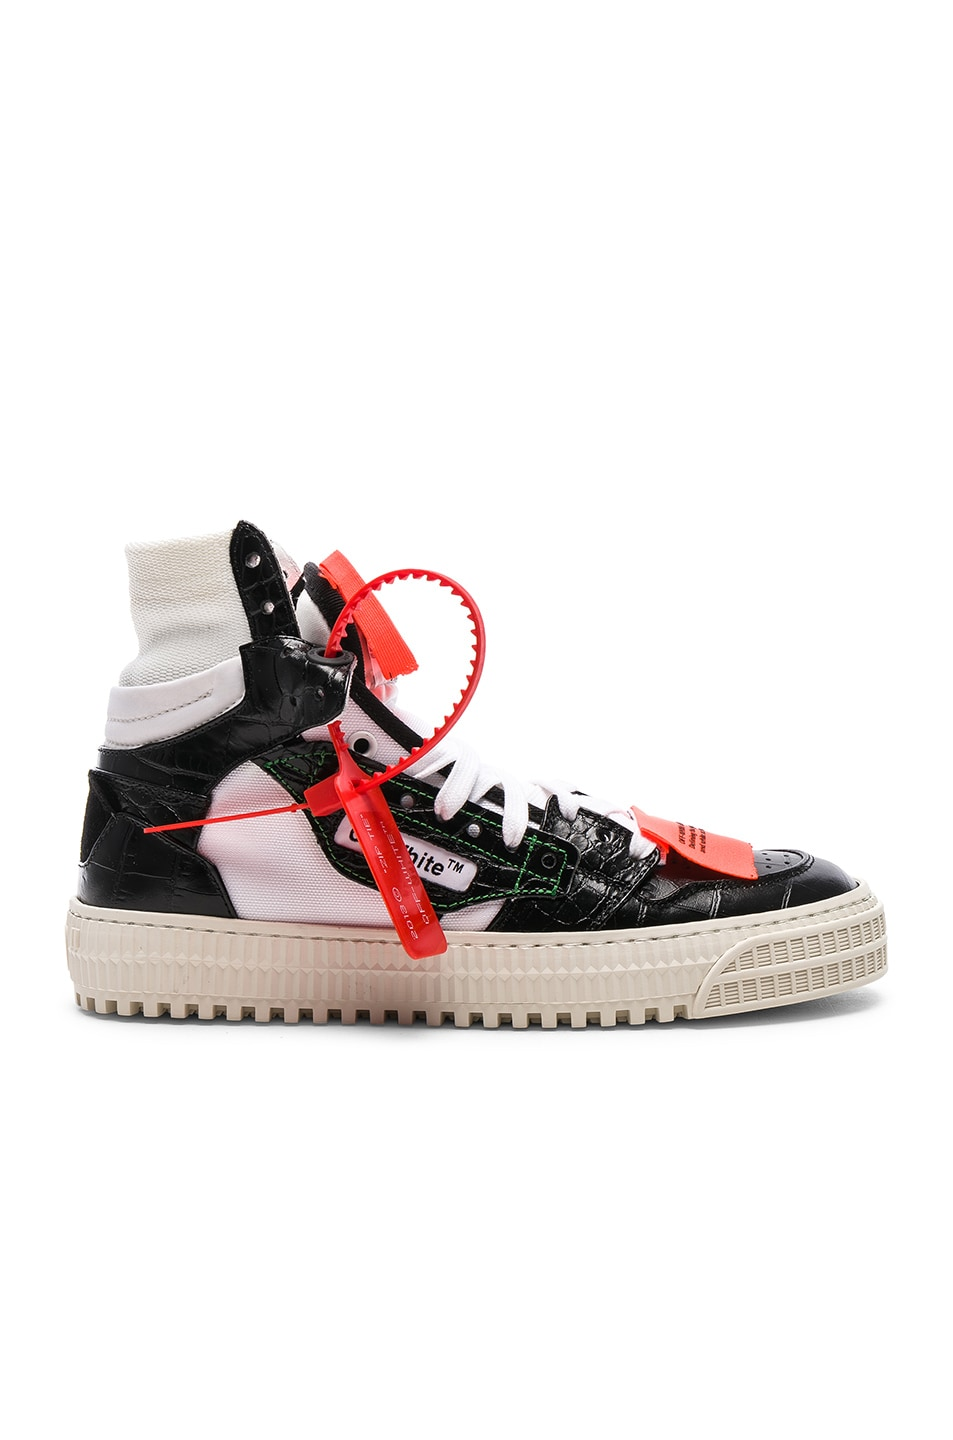 Image 1 of OFF-WHITE Low 3.0 Sneakers in Black